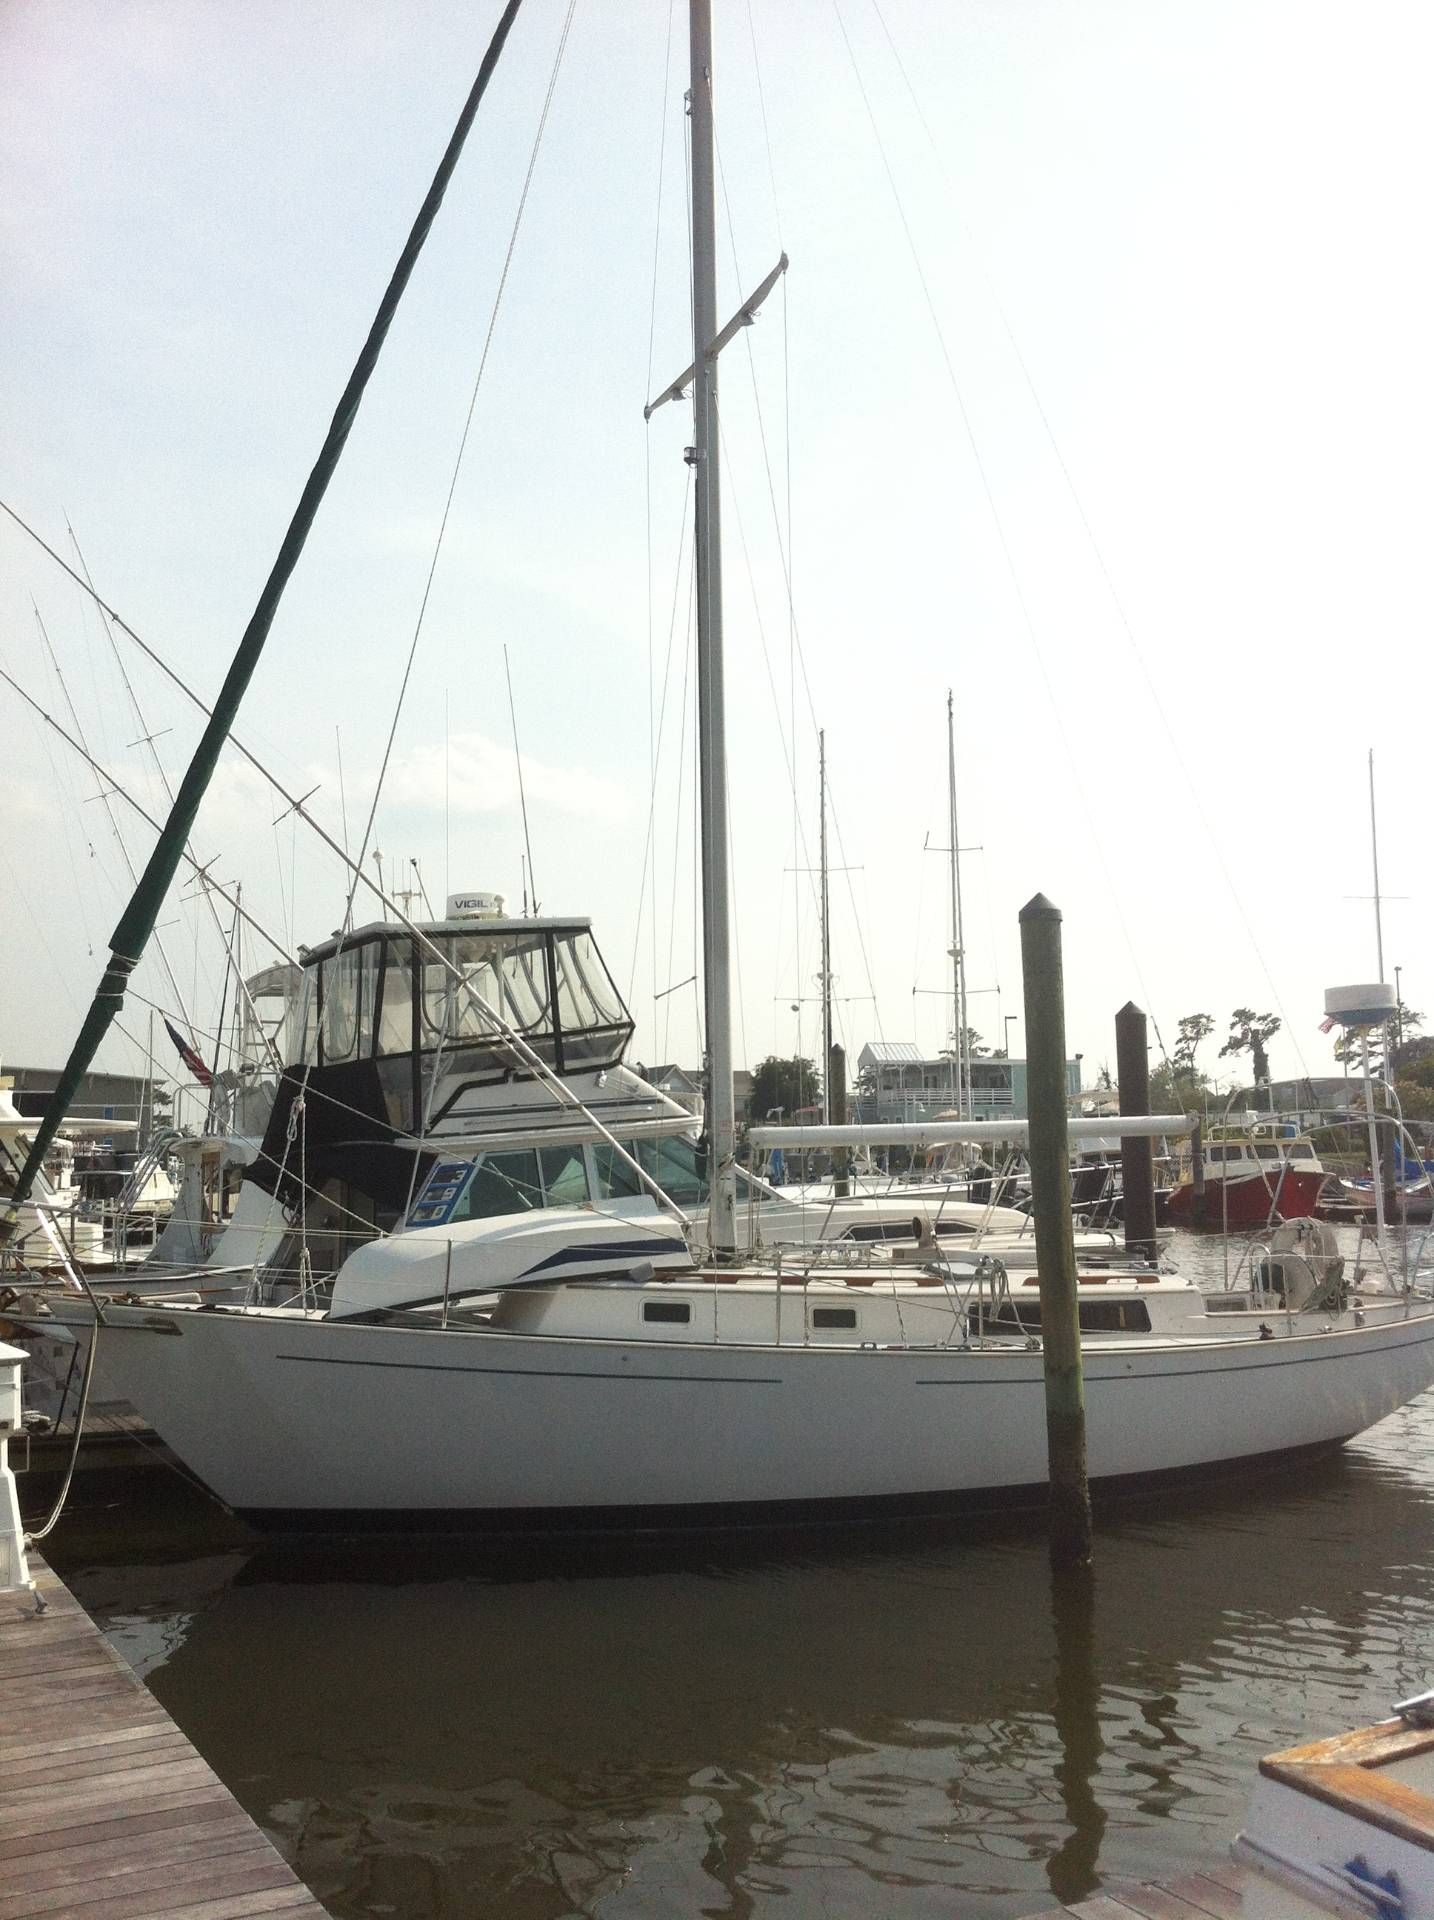 1981 Hinterhoeller 35 NIagara in Norfolk, Virginia